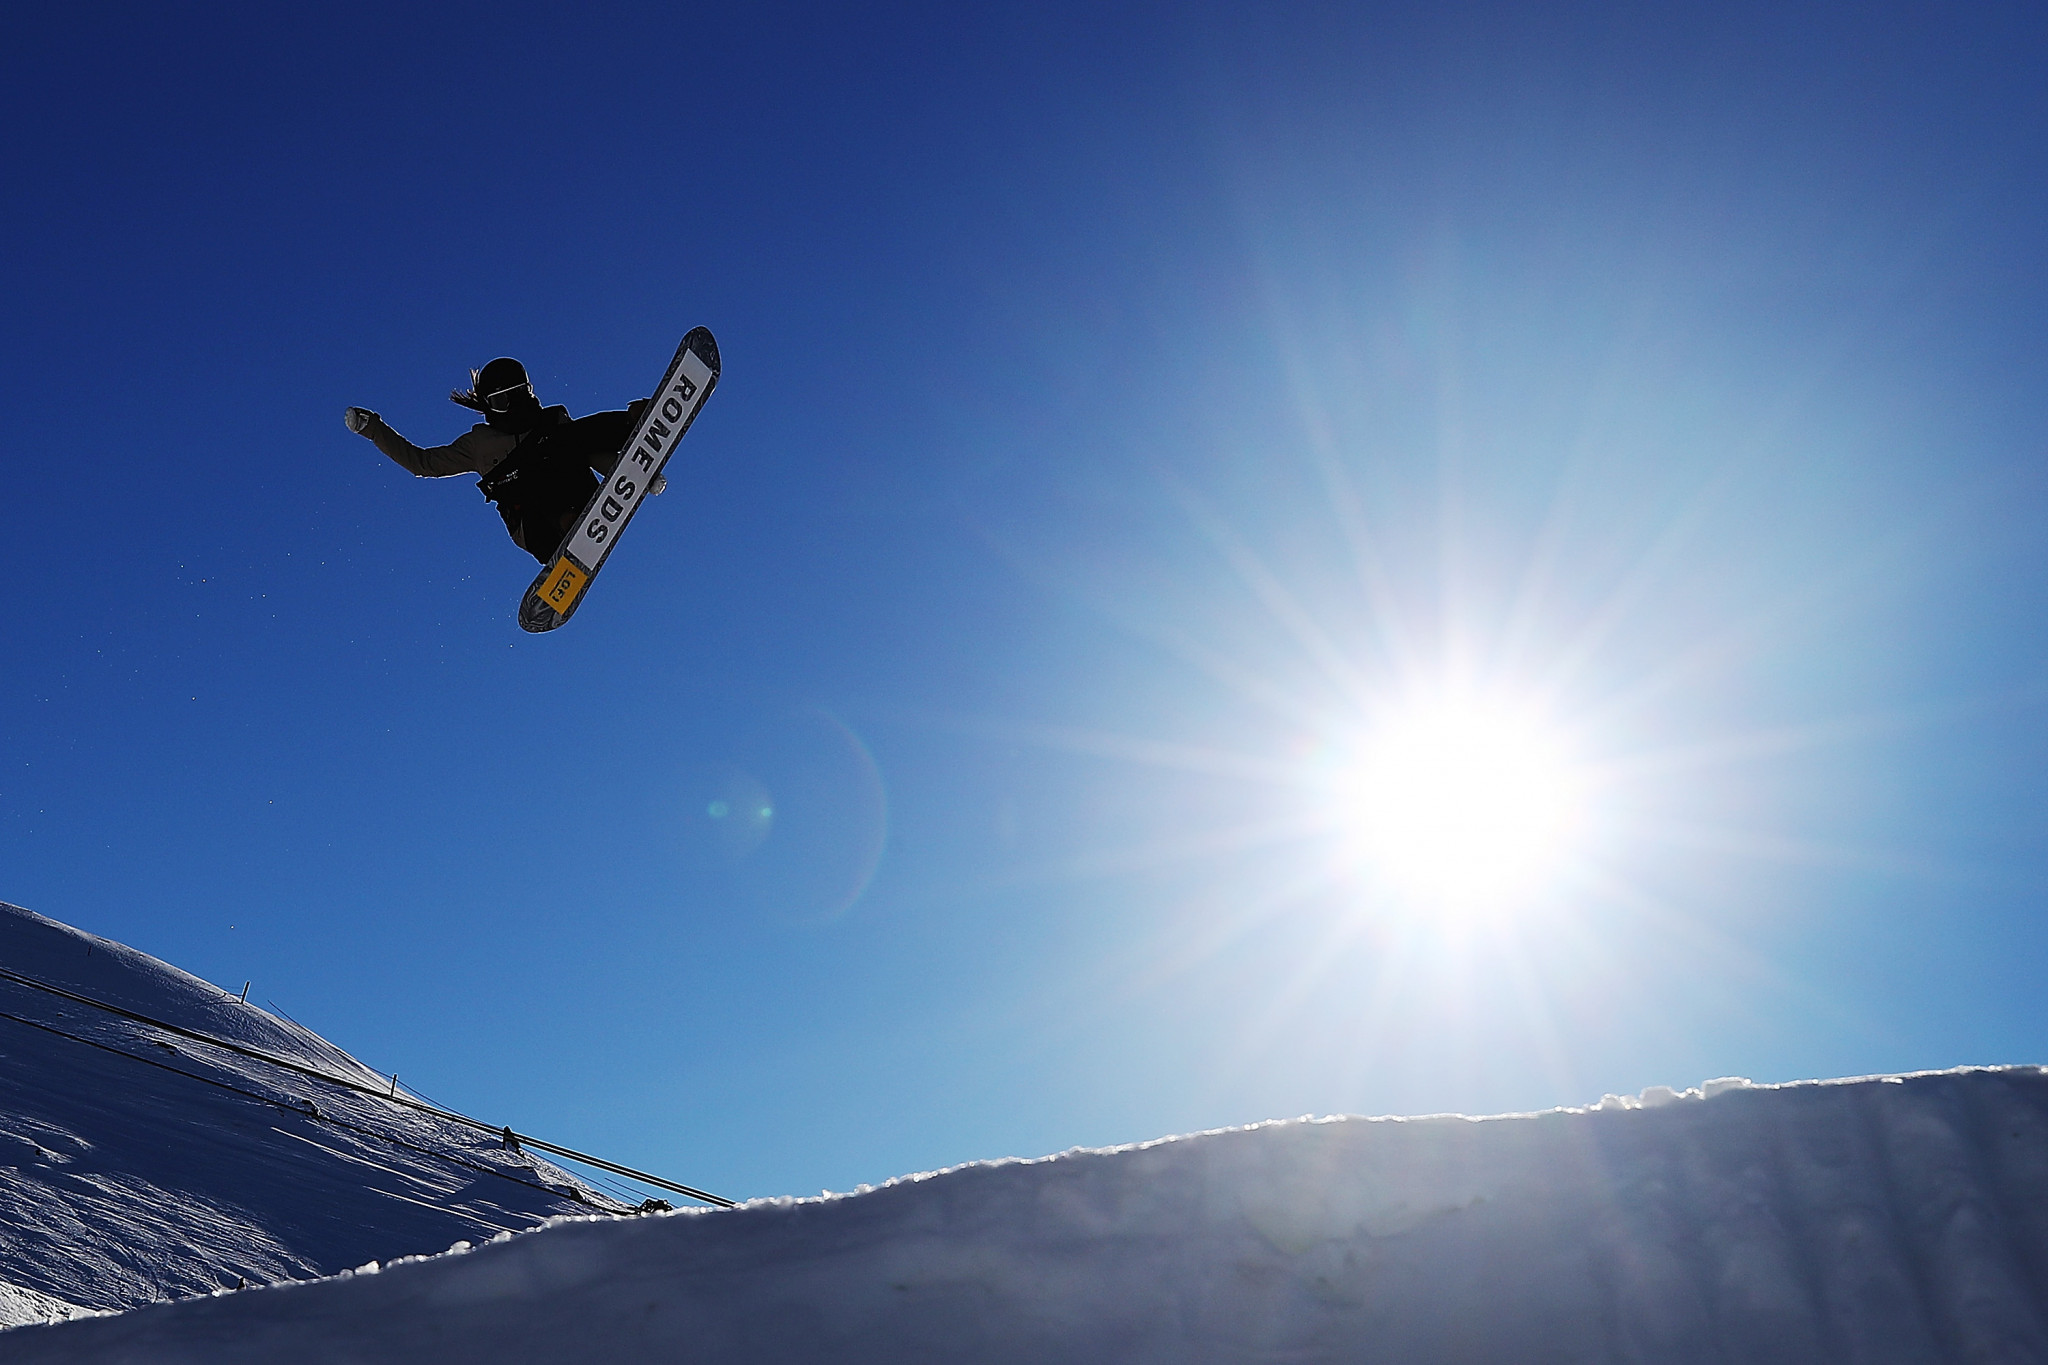 Fog cancels action at World Junior Freestyle and Snowboard World Championships